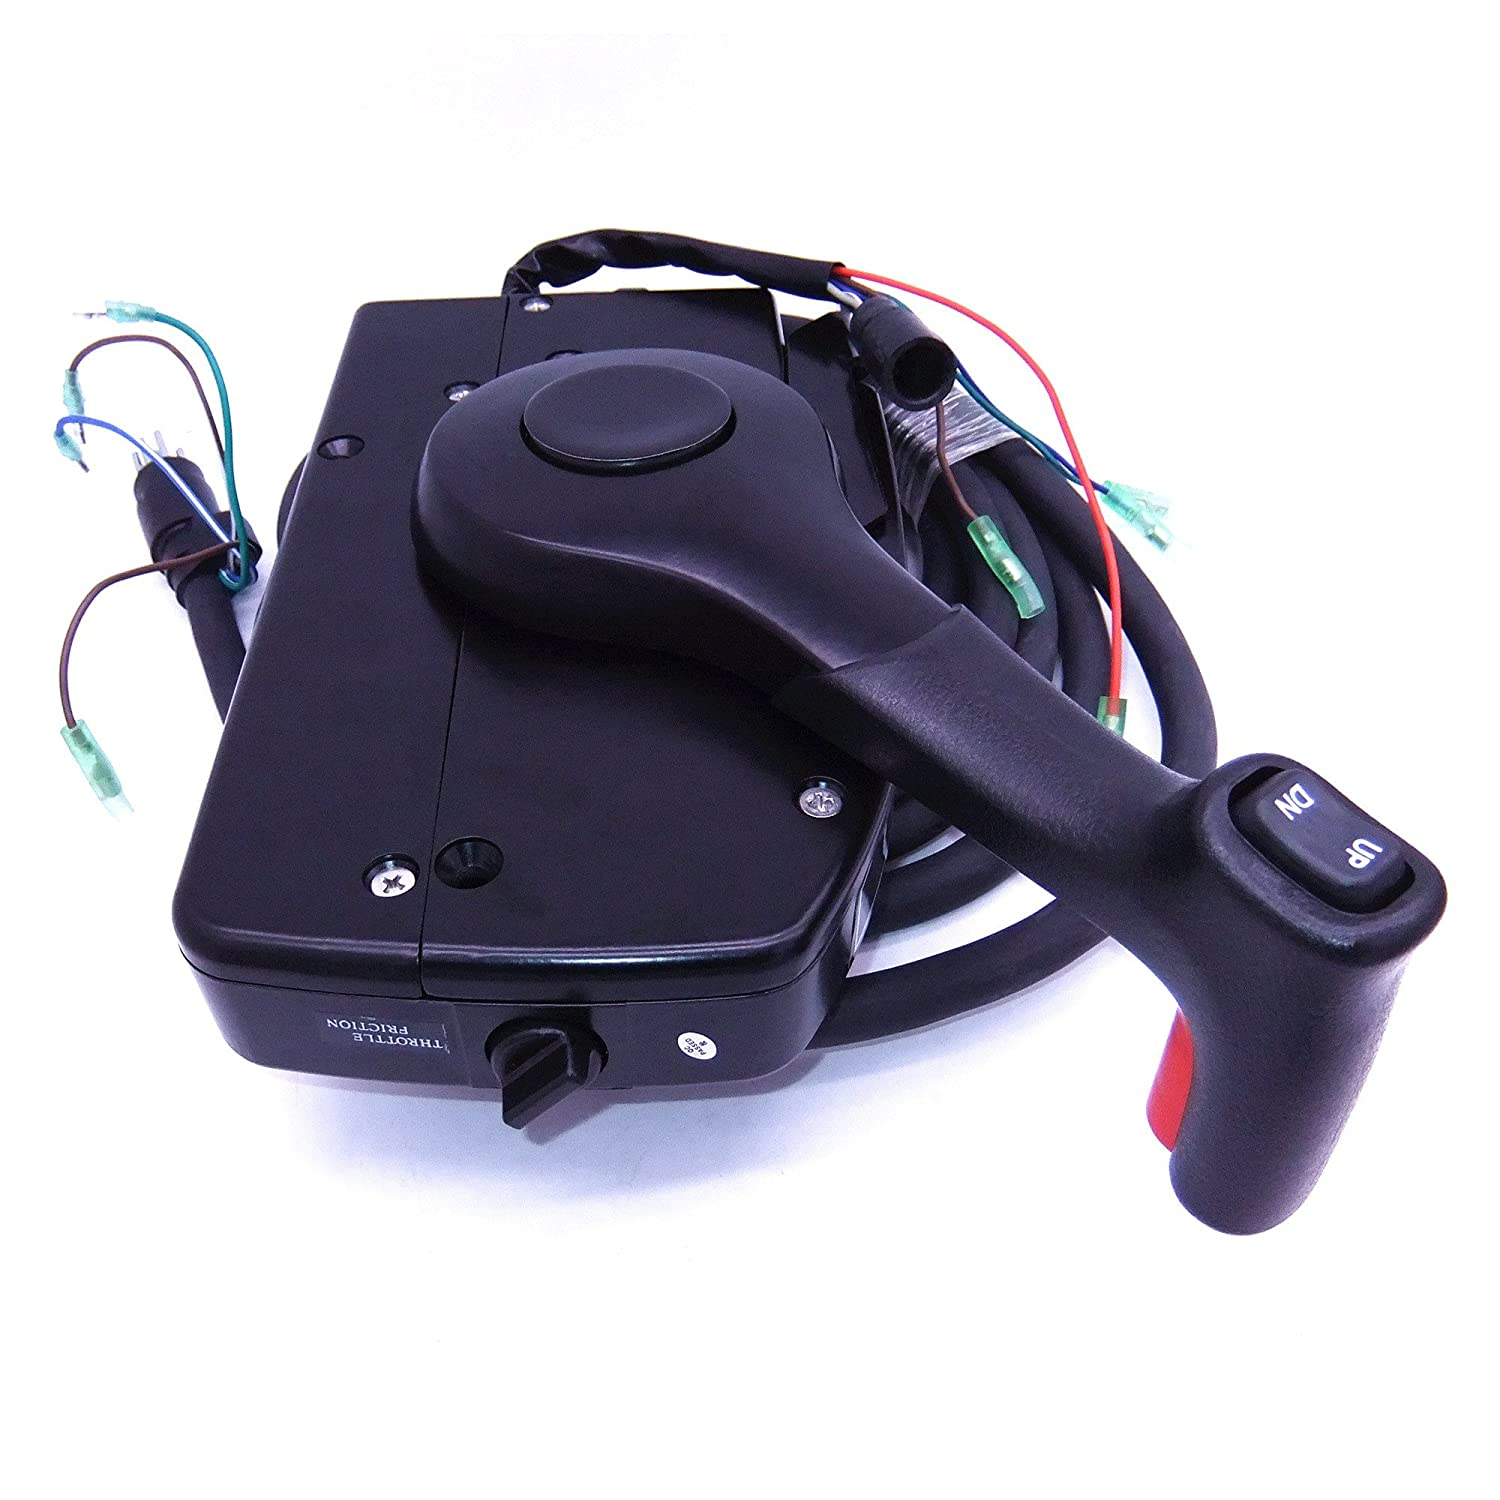 Amazon.com : 881170A15 Boat Motor Side Mount Remote Control Box with 8 Pin  for Mercury Outboard Engine PT, Left Side : Sports & Outdoors